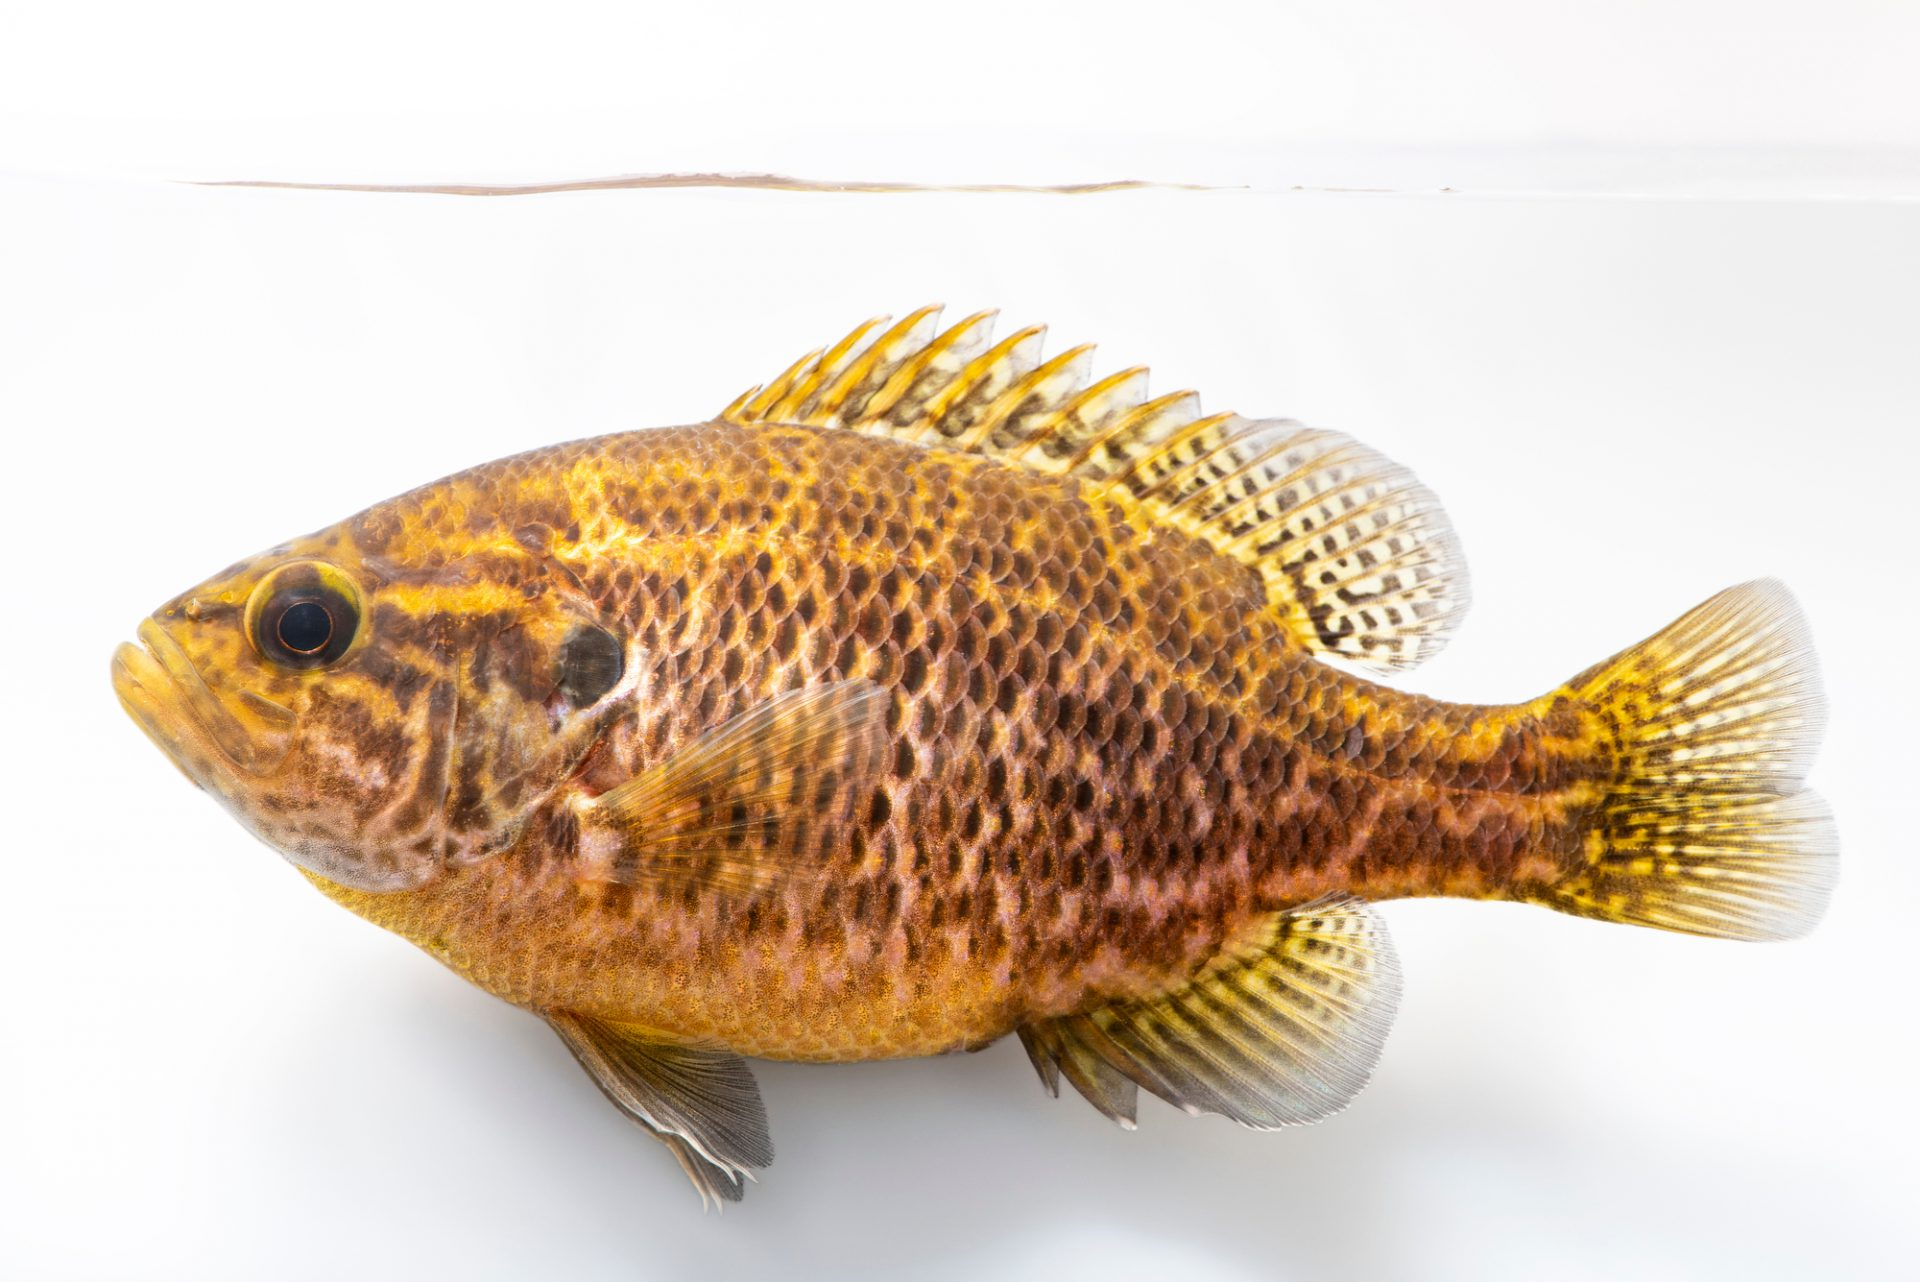 Photo: Warmouth ( Lepomis gulosus) at the Fish Conservation and Culture Lab in Byron, CA at UC Davis.